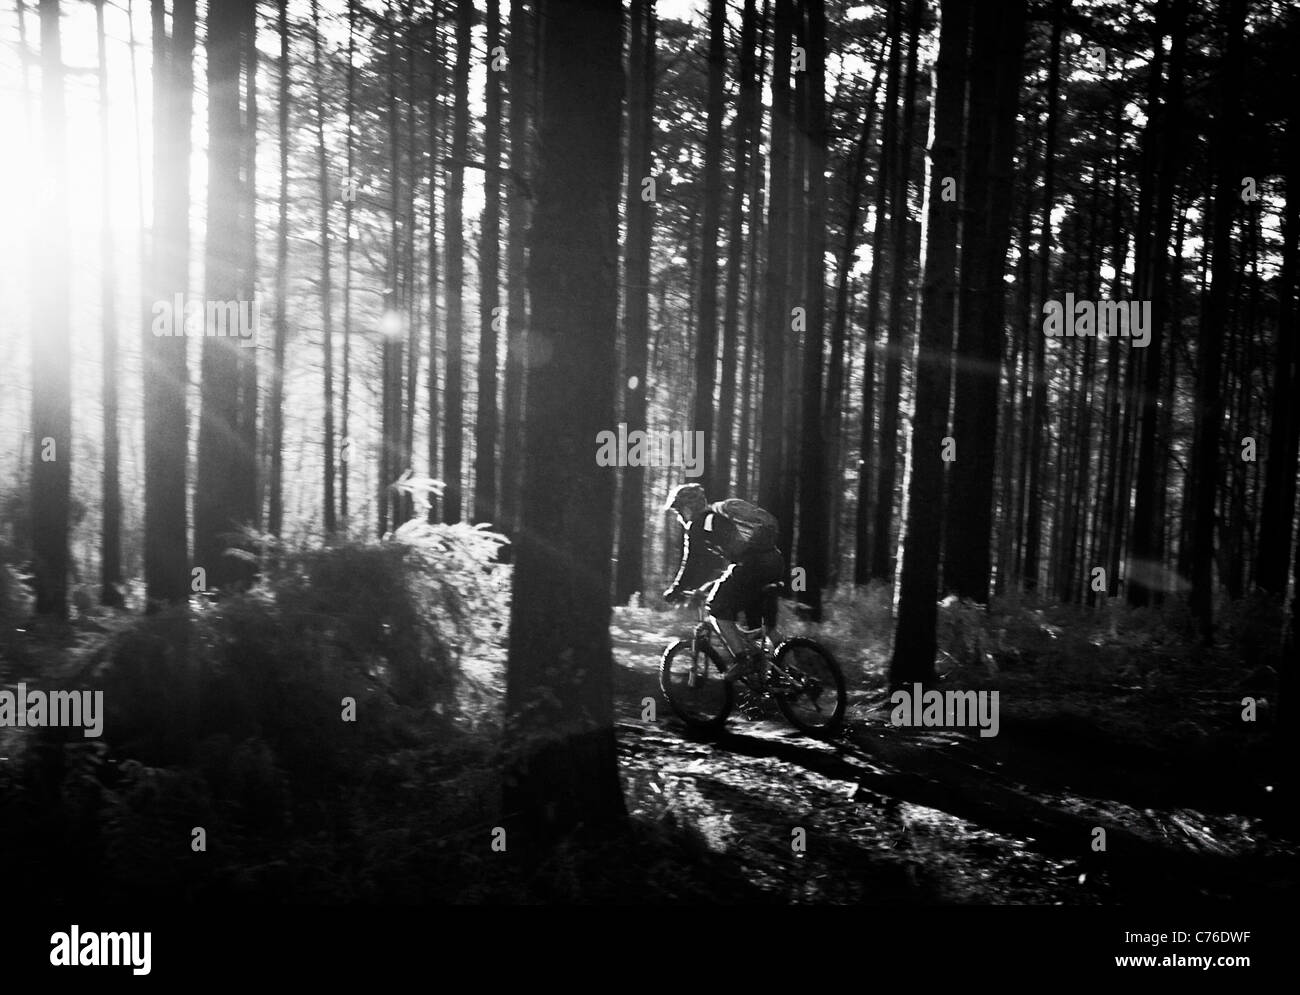 Mountain biker in the woods, in Black and white - Stock Image